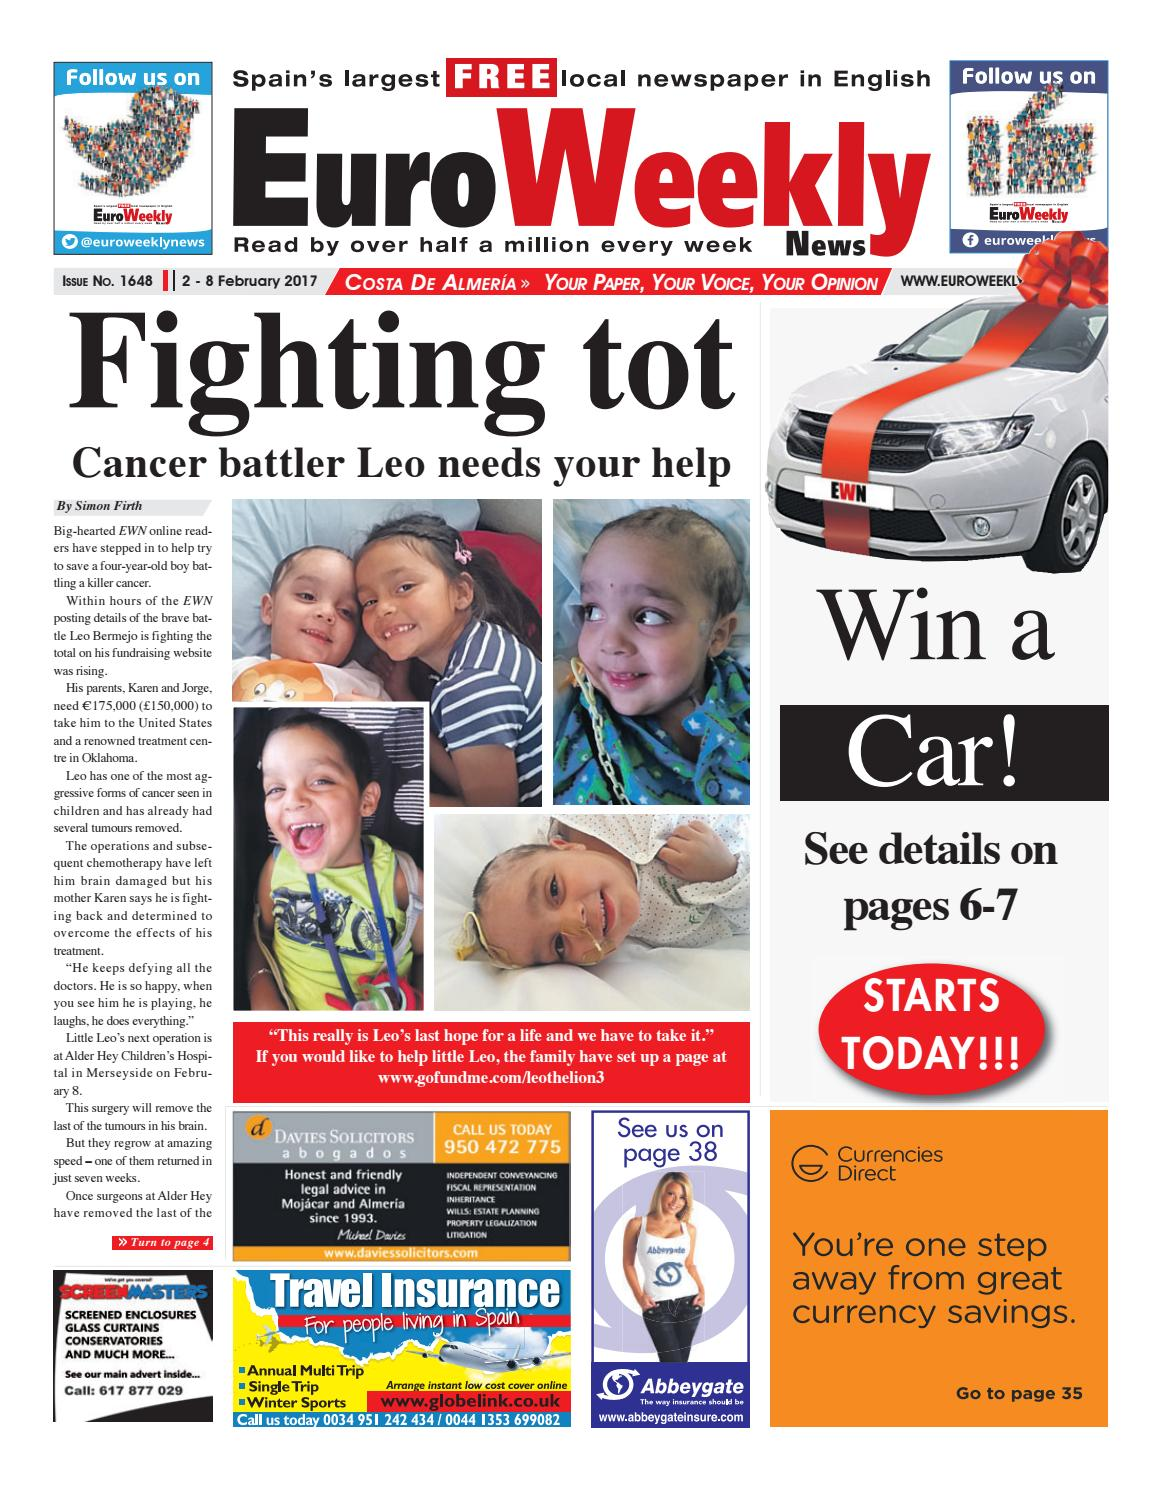 Euro Weekly News - Costa de Almeria 2 - 8 February 2017 Issue 1648 ... d3f2b8ddd7ca5